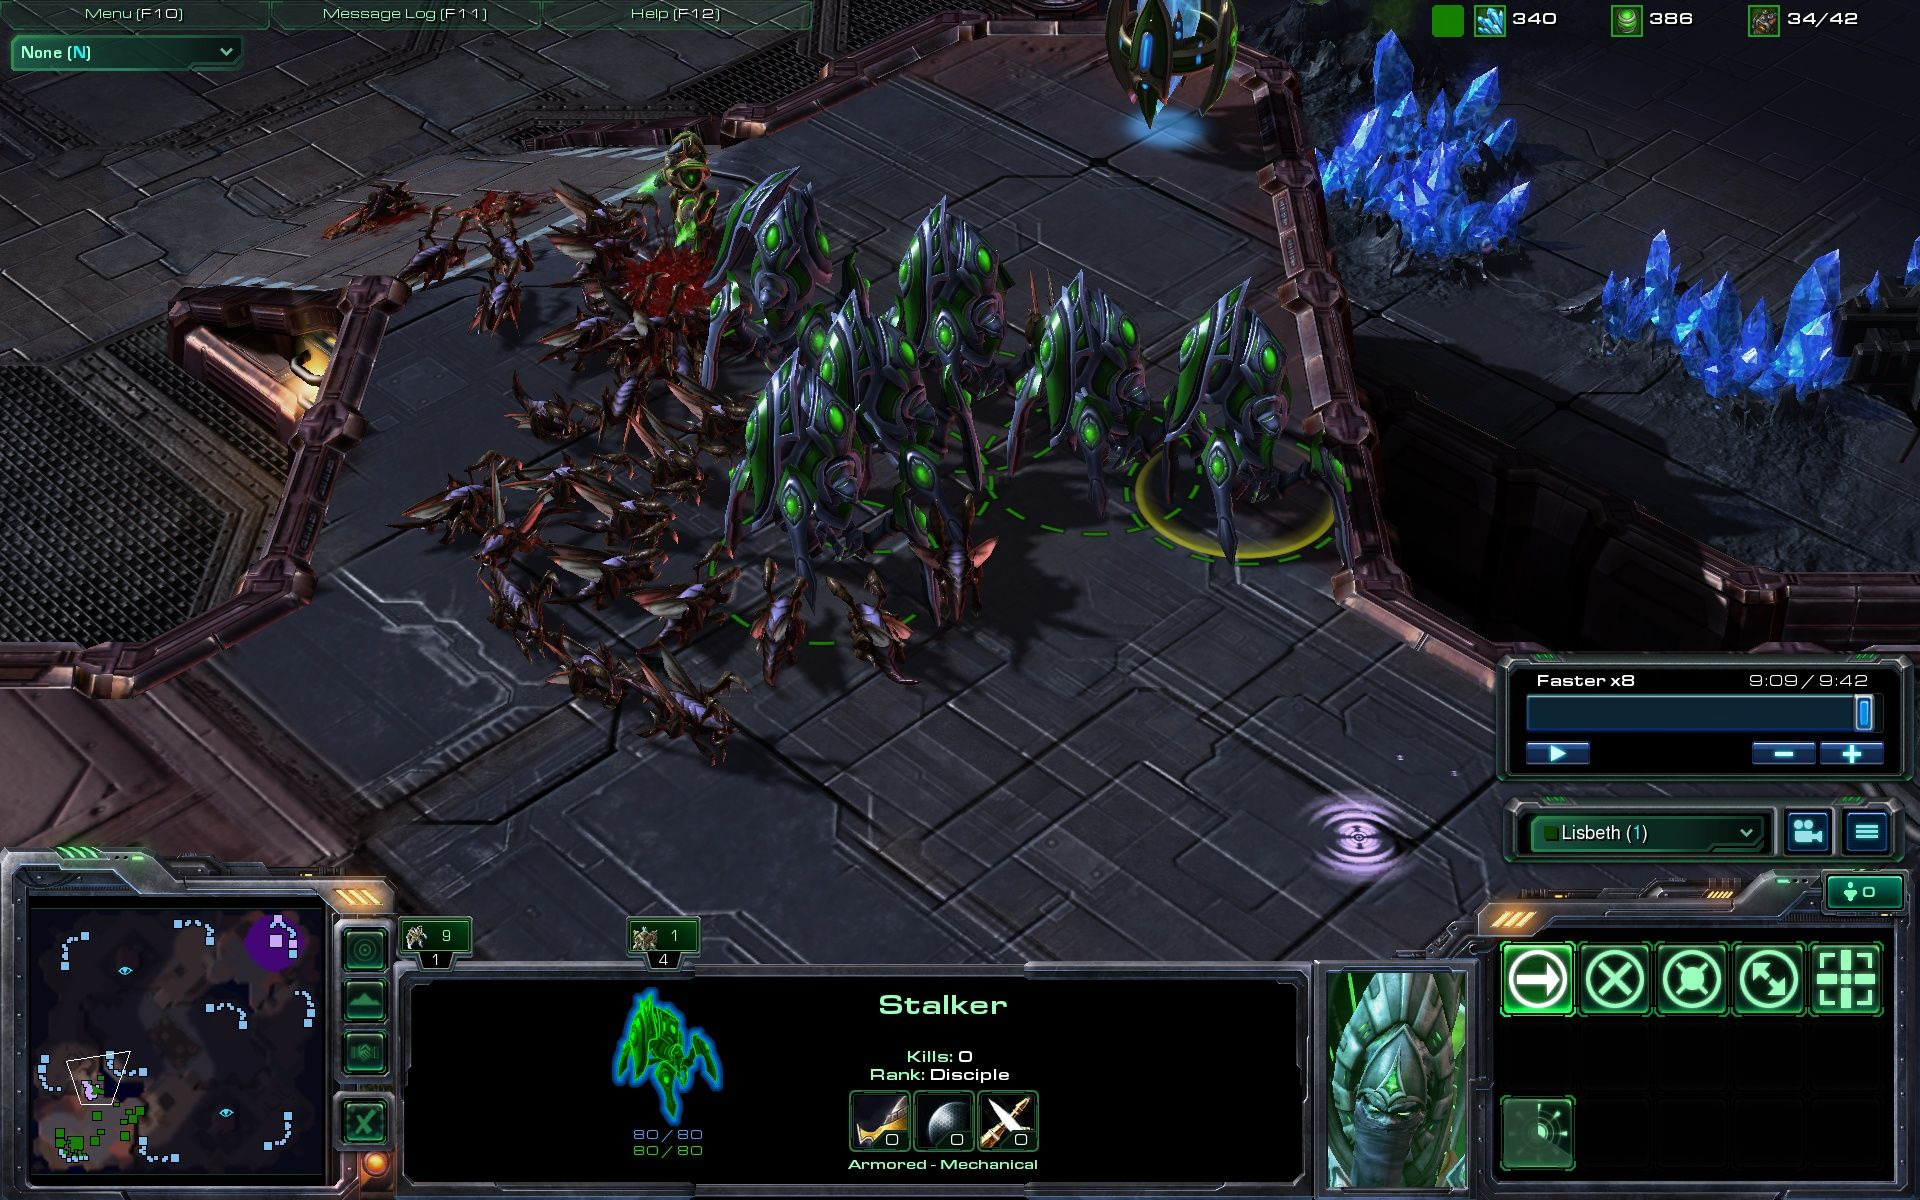 StarCraft II: Wings of Liberty Windows Multiplayer: The Zerglings are once again very powerful even against bigger units,